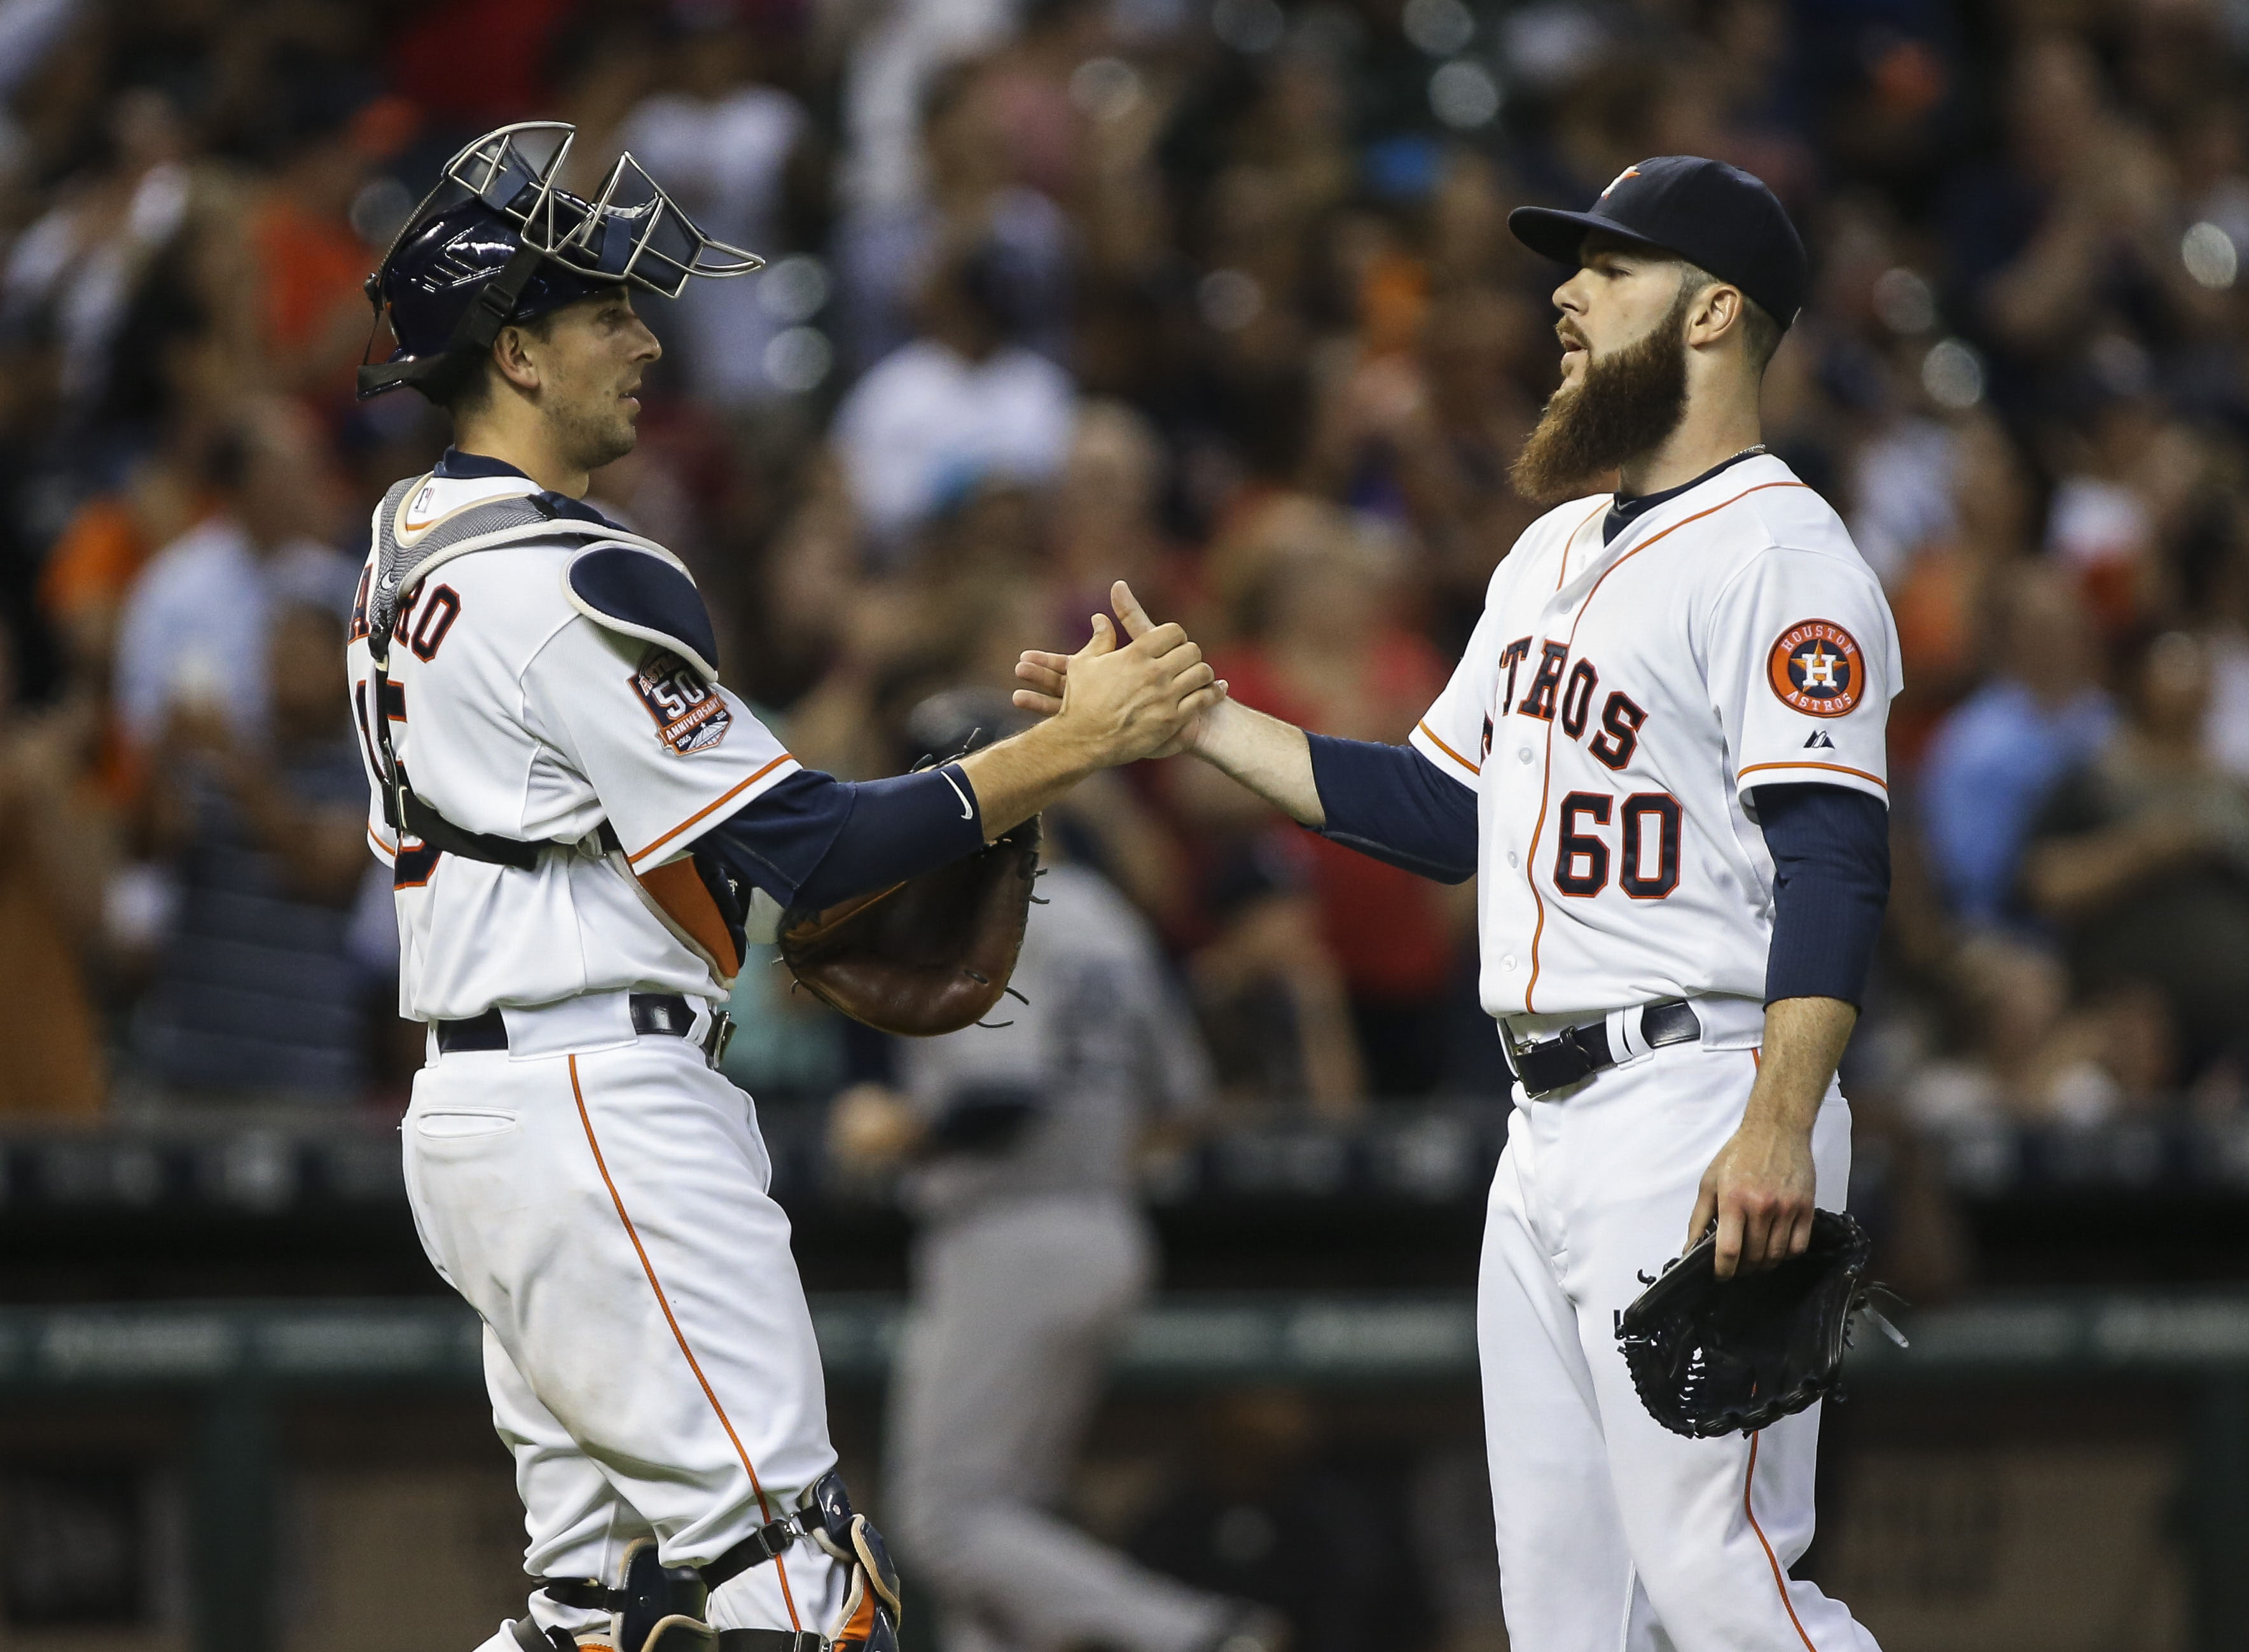 Keuchel wouldn't lead the league in ERA without Castro. Or would he?